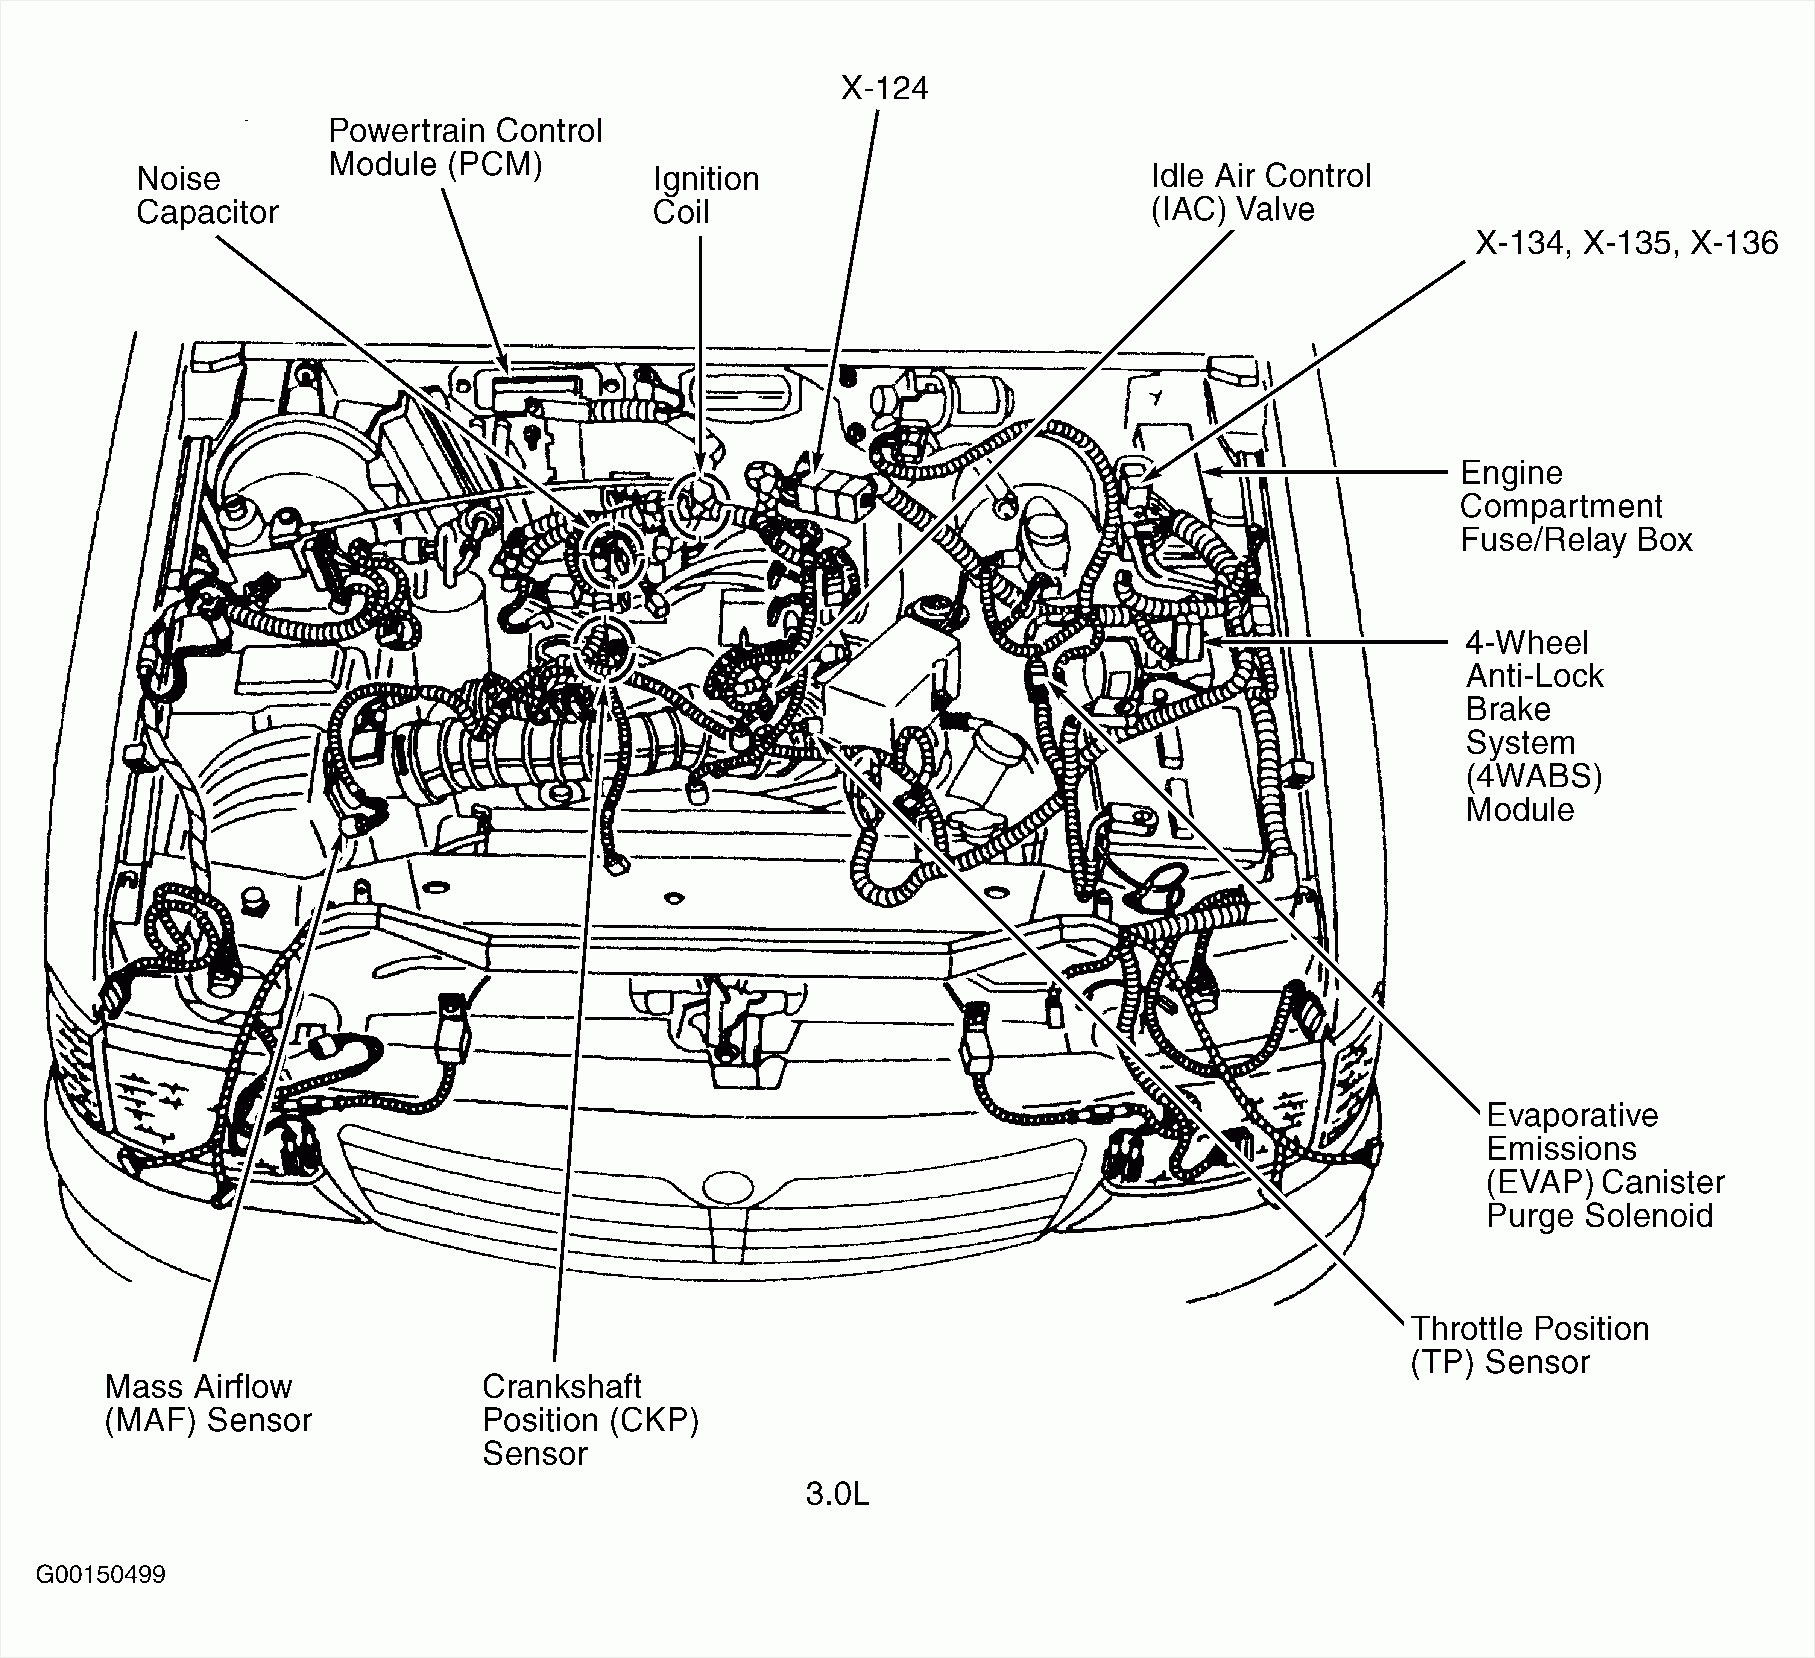 chrysler 3 3 v6 engine diagram wiring diagram Ford 3.0 V6 Engine Diagram Thermostat chrysler 3 8 v6 engine diagram wiring diagrams clickchrysler 3 3 engine diagram wiring diagrams pontiac